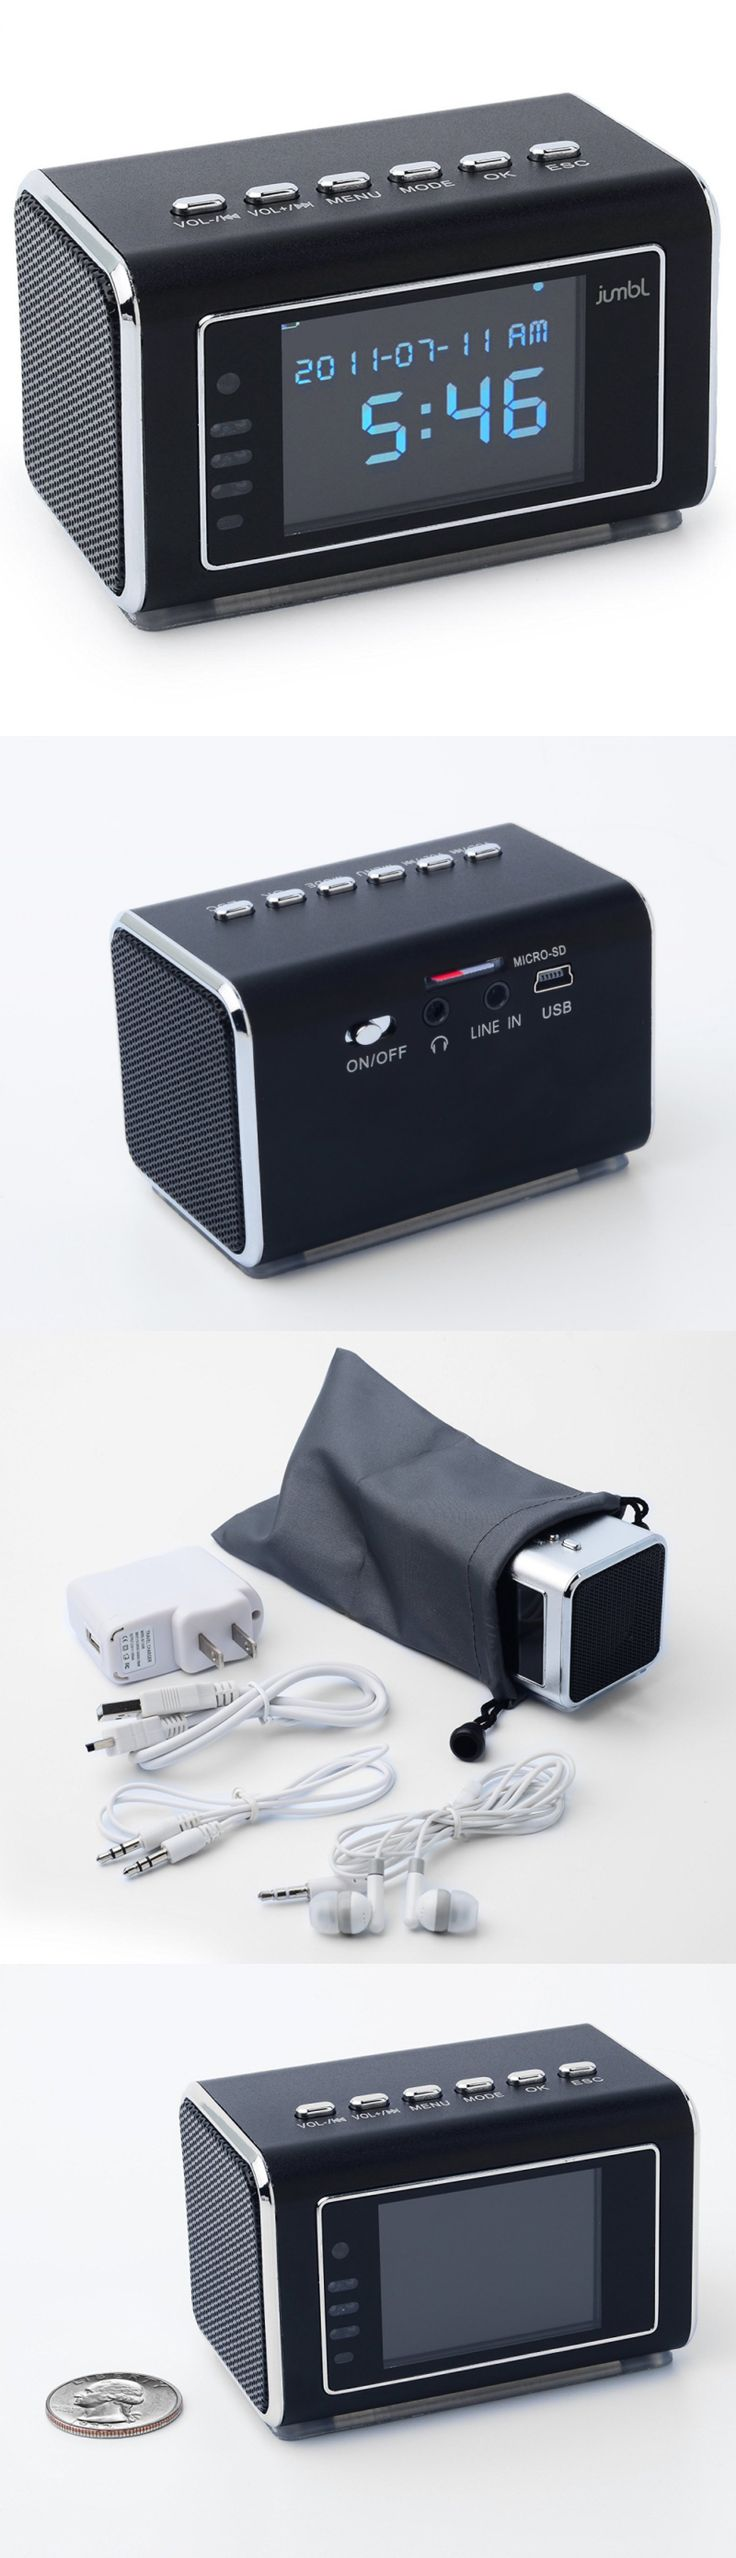 Surveillance Gadgets: Jumbl Mini Hidden Spy Camera Radio Clock Wih Motion Detection And Infrared Night BUY IT NOW ONLY: $72.99